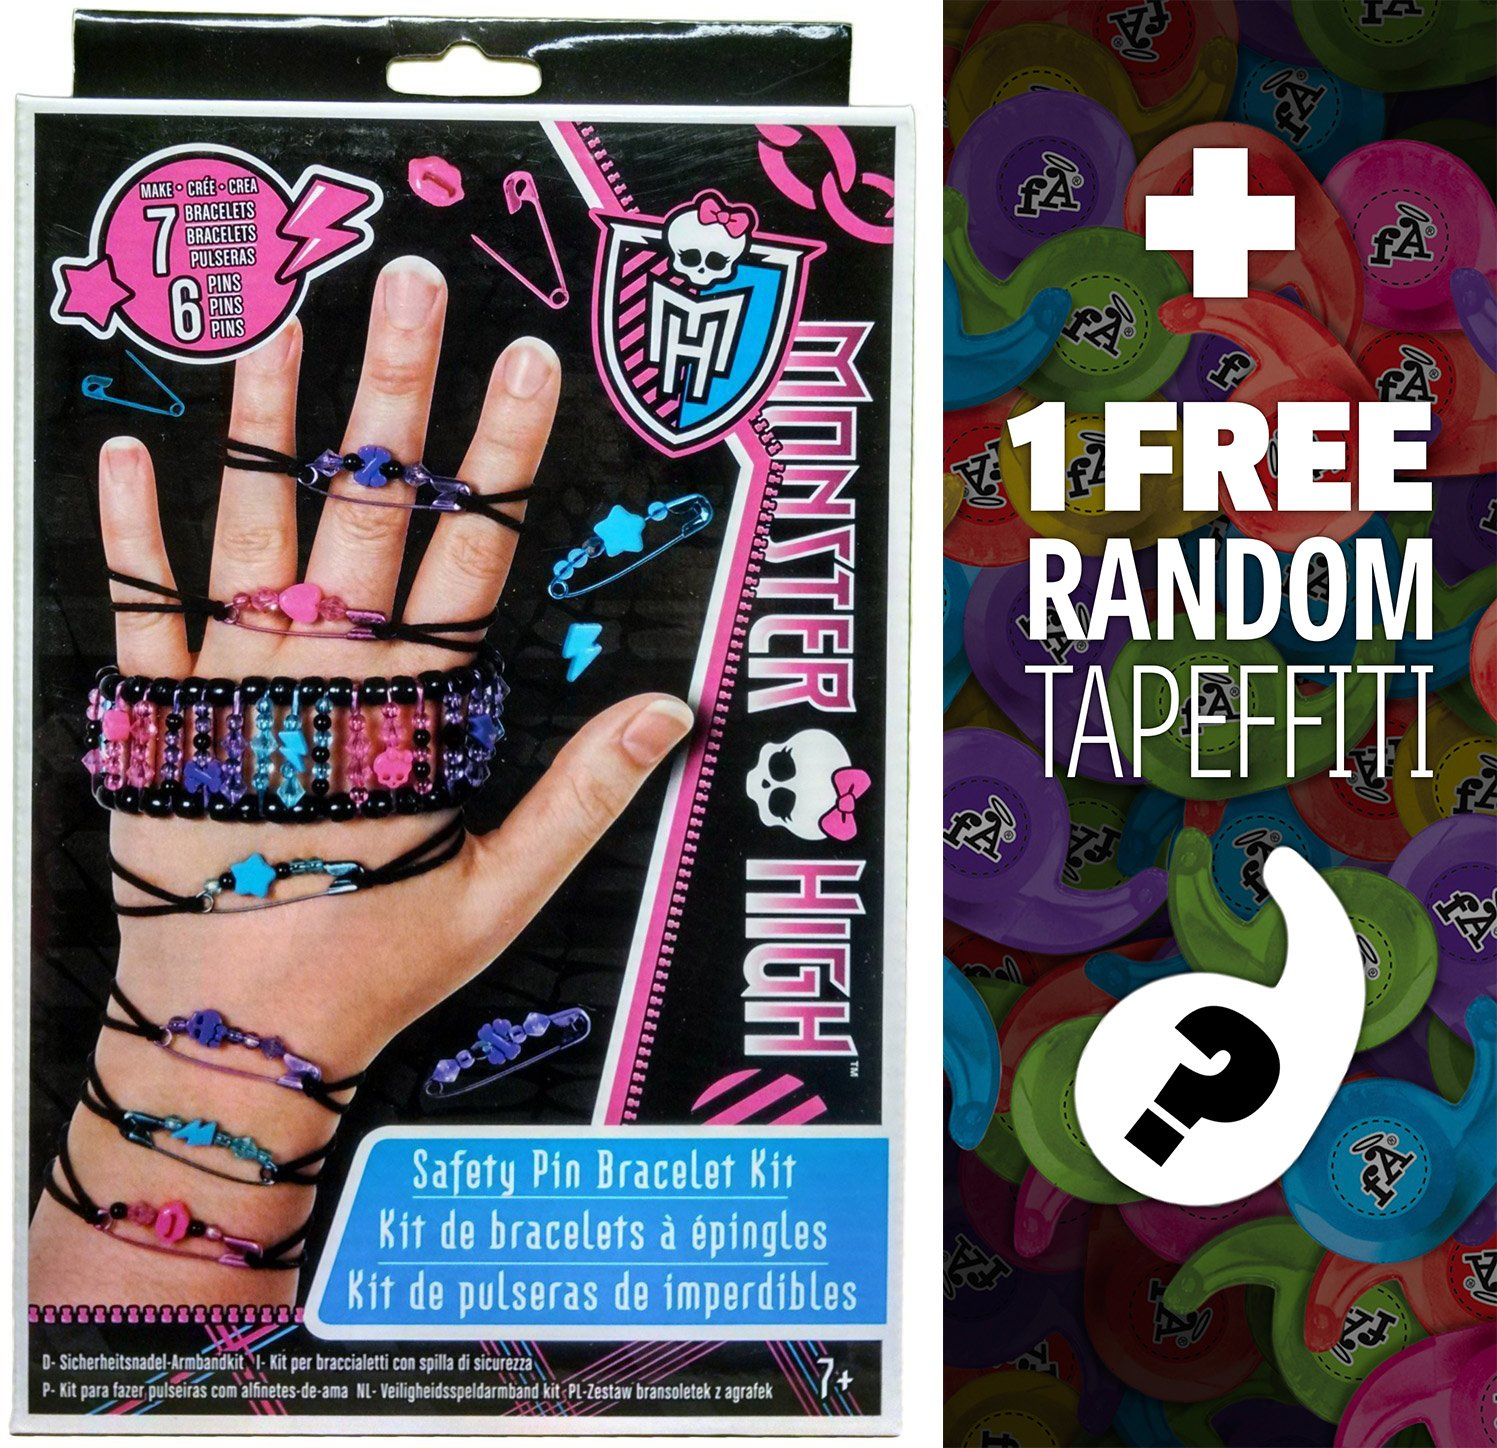 Monster High Safety Pin Bracelet Kit + 1 FREE Mini-Tapeffiti Bundle академия групп косметичка monster high